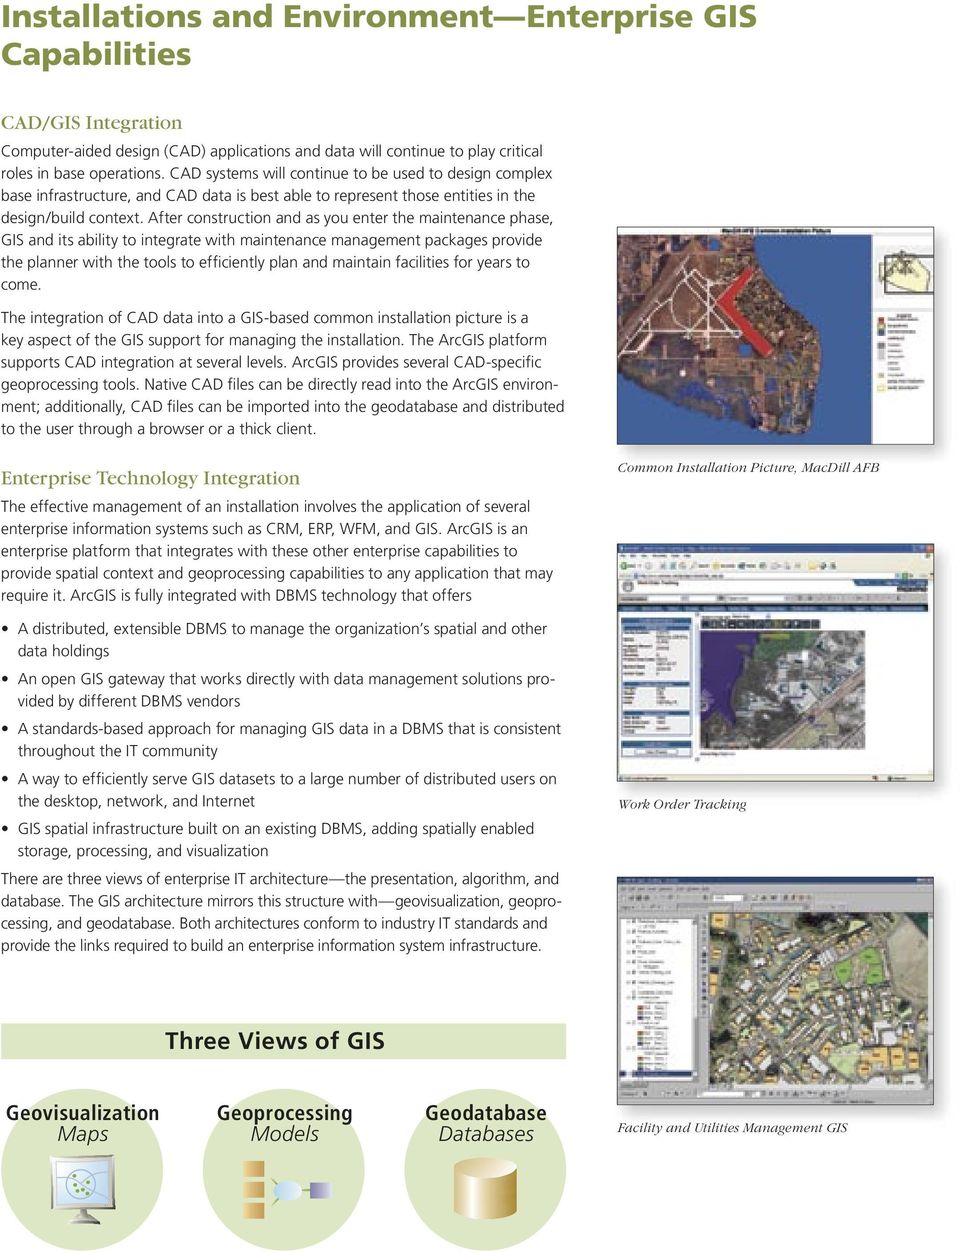 After construction and as you enter the maintenance phase, GIS and its ability to integrate with maintenance management packages provide the planner with the tools to efficiently plan and maintain